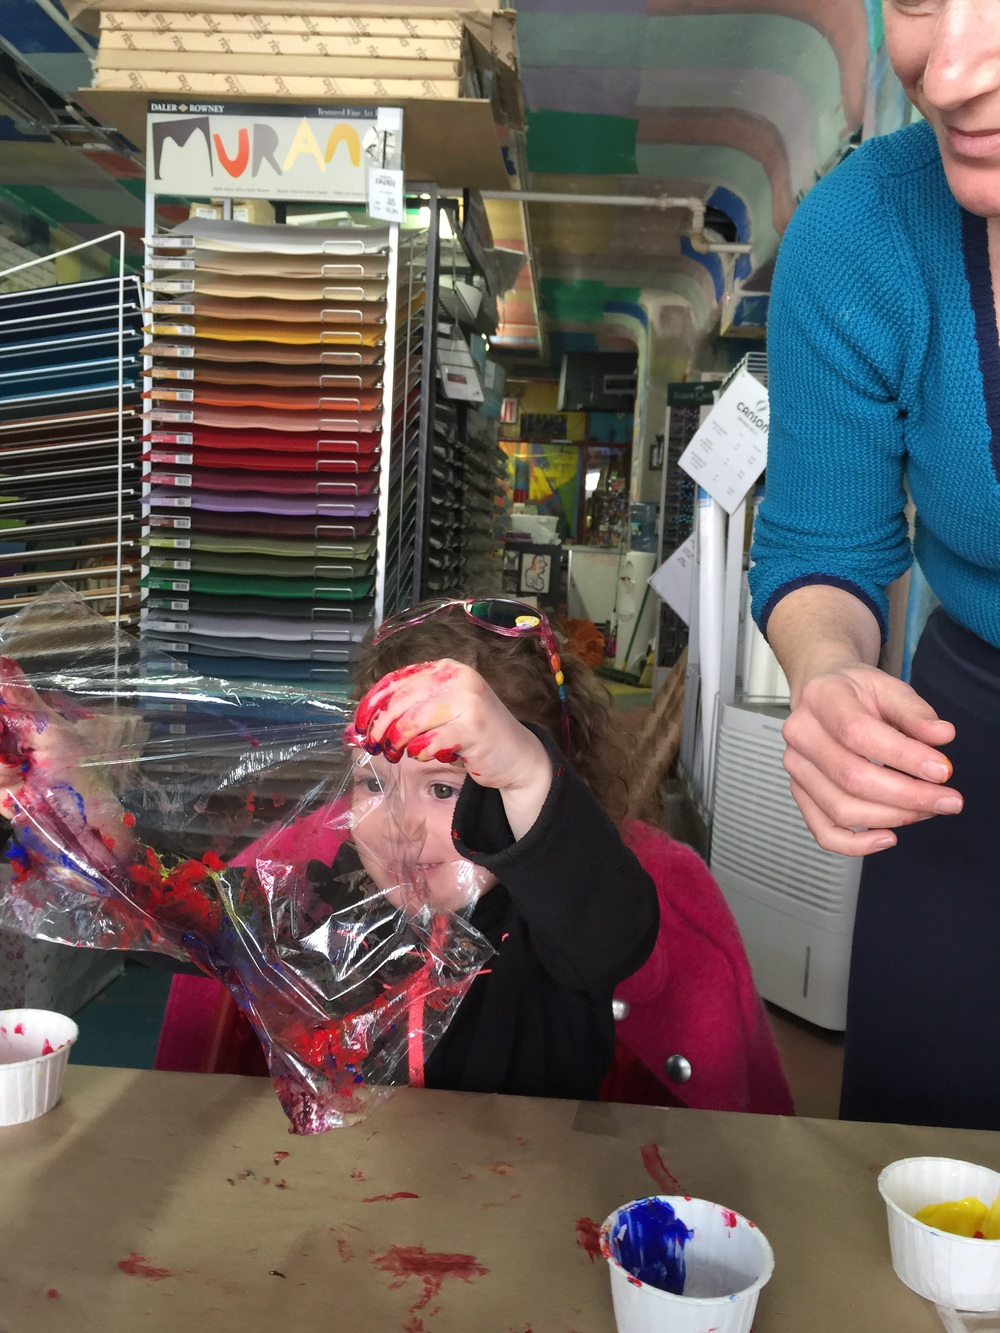 Mixing colors is so exciting! Just ask Ciela!